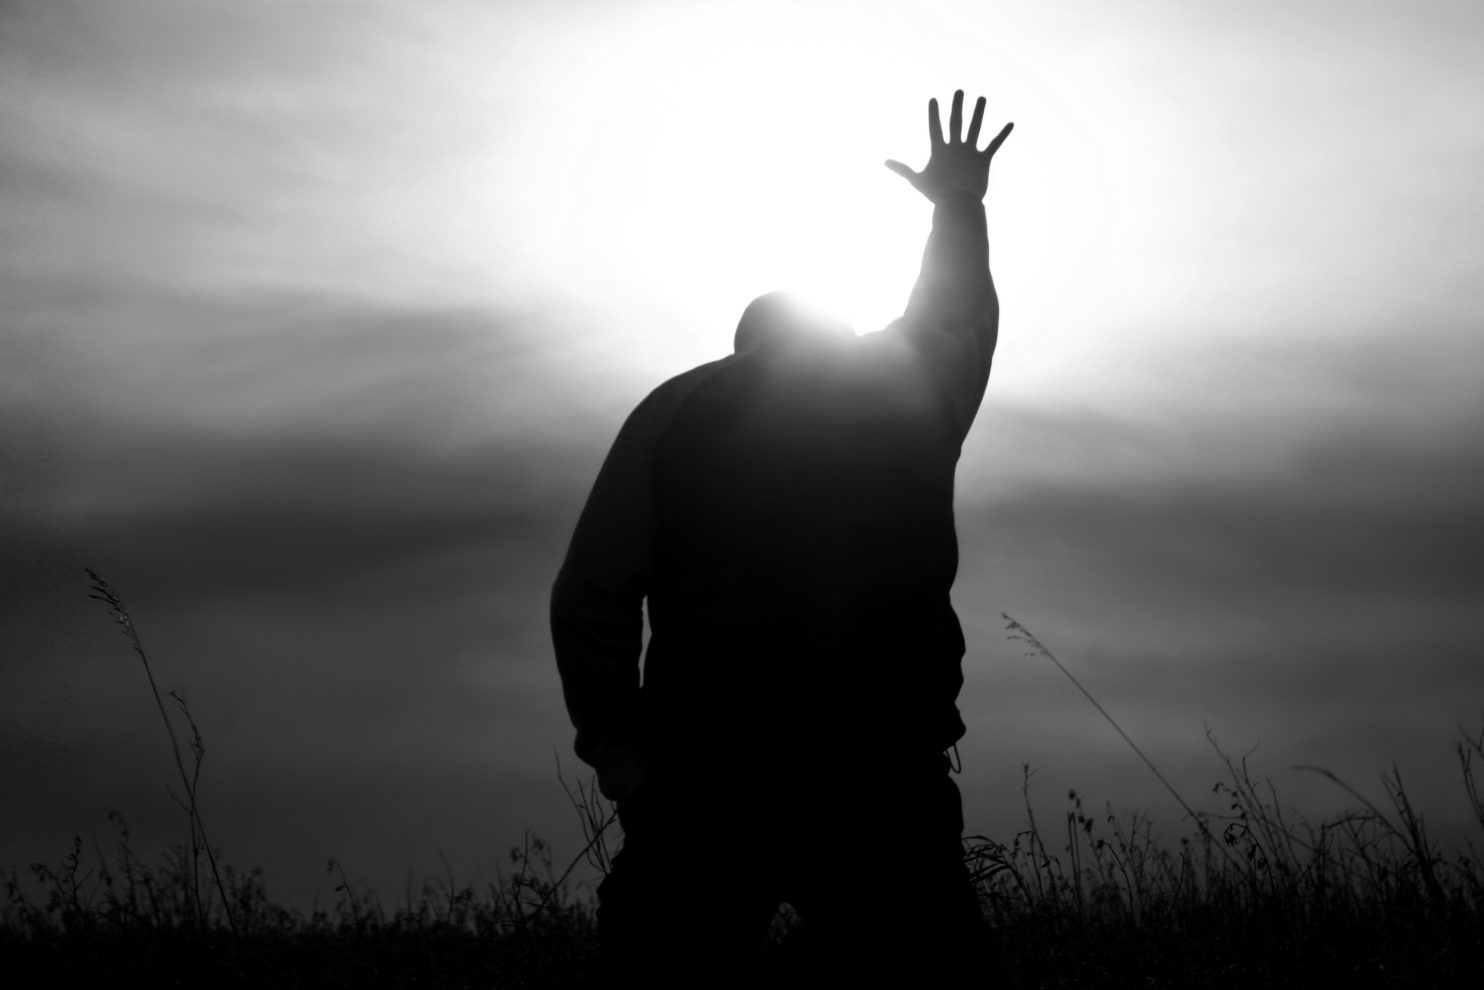 A man lifts his hand to heaven in worship. Black and white image depicting a Christian theme with man lifting his hand to heaven in praise. Powerful monochrome image. Additional themes include praise and worship, Christianity, hope, heaven, healing, miracles, salvation, faith, god, prayer, meditation, spirituality, afterlife, and forgiveness.